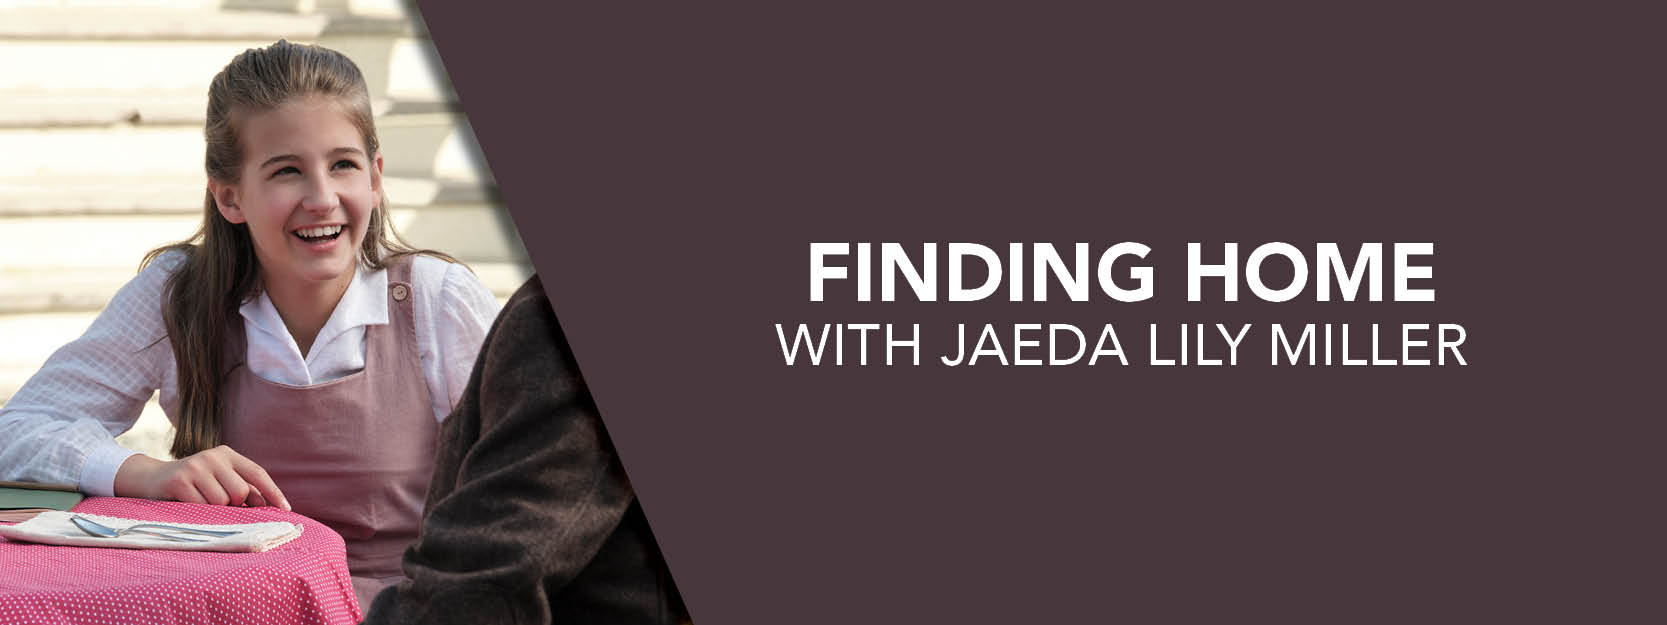 Finding Home with Jaeda Lily Miller